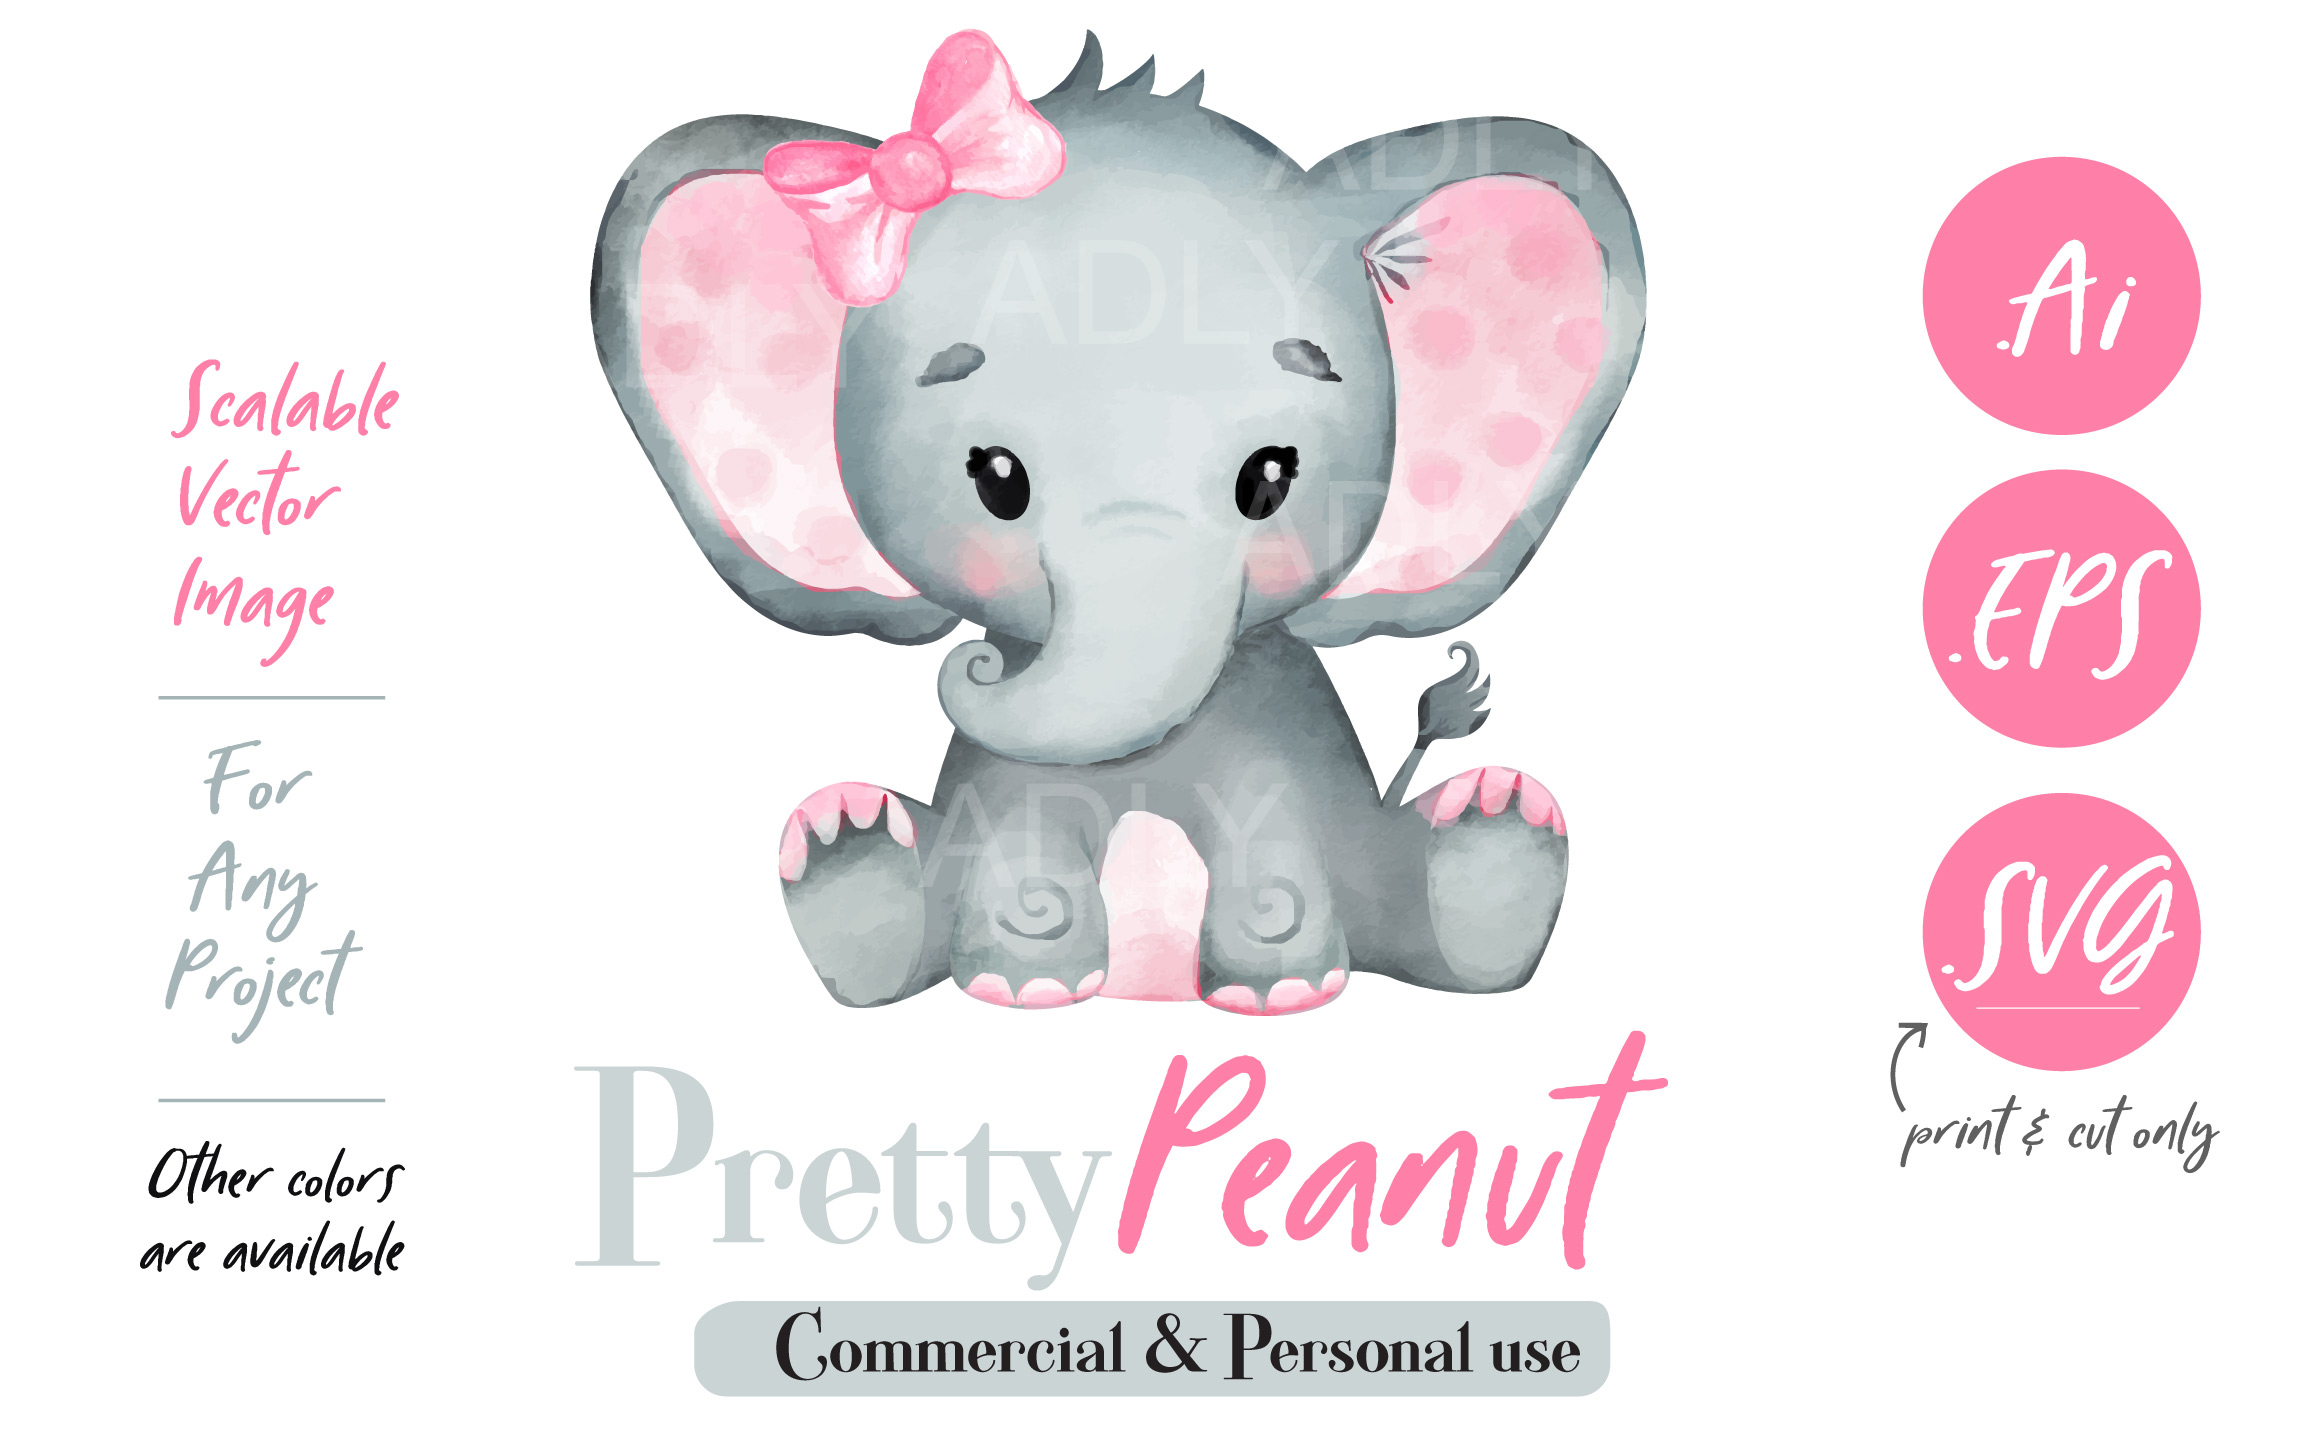 Download Free Elephant Watercolor Vector Graphic By Adlydigital Creative Fabrica for Cricut Explore, Silhouette and other cutting machines.